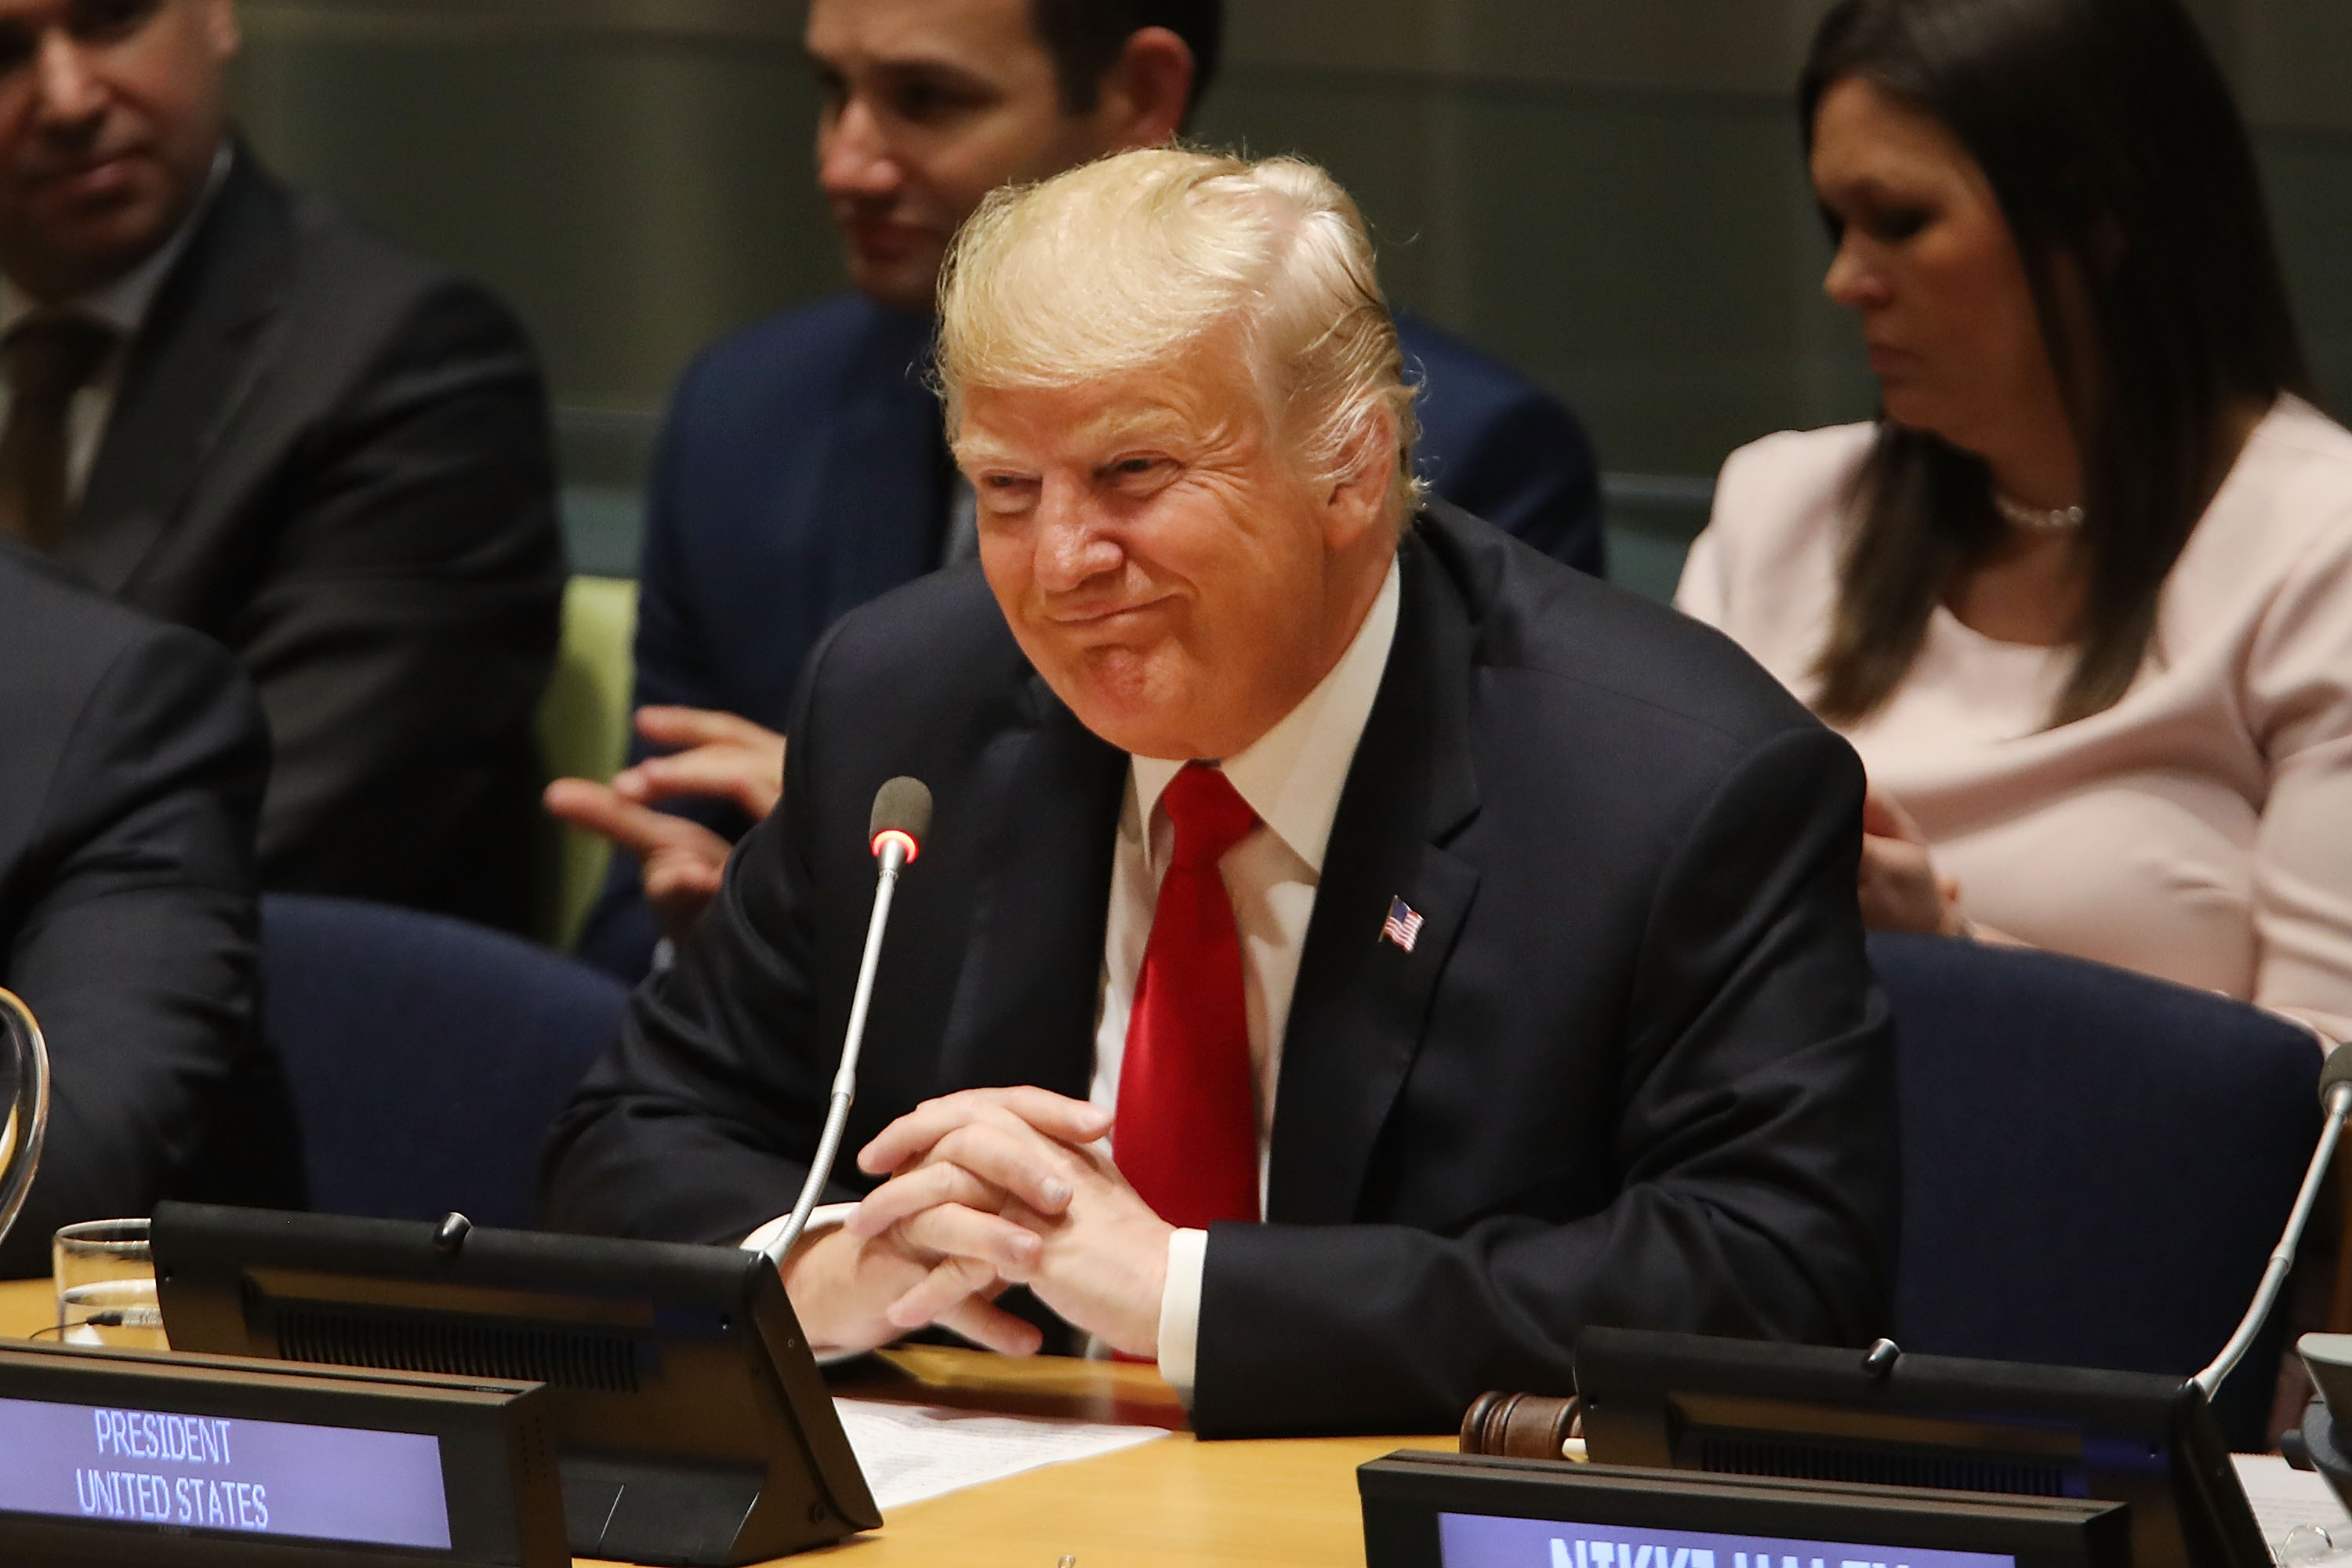 NEW YORK, NY - SEPTEMBER 24:  U.S. President Donald Trump attends a meeting on the global drug problem at the United Nations (UN) with UN Ambassador Nikki Haley a day ahead of the official opening of the 73rd United Nations General Assembly on September 24, 2018 in New York City. The United Nations General Assembly, or UNGA, is expected to draw 84 heads of state and 44 heads of government in New York City for a week of speeches, talks and high level diplomacy concerning global issues. New York City is under tight security for the annual event with dozens of road closures and thousands of security officers patrolling city streets and waterways.  (Photo by Spencer Platt/Getty Images)